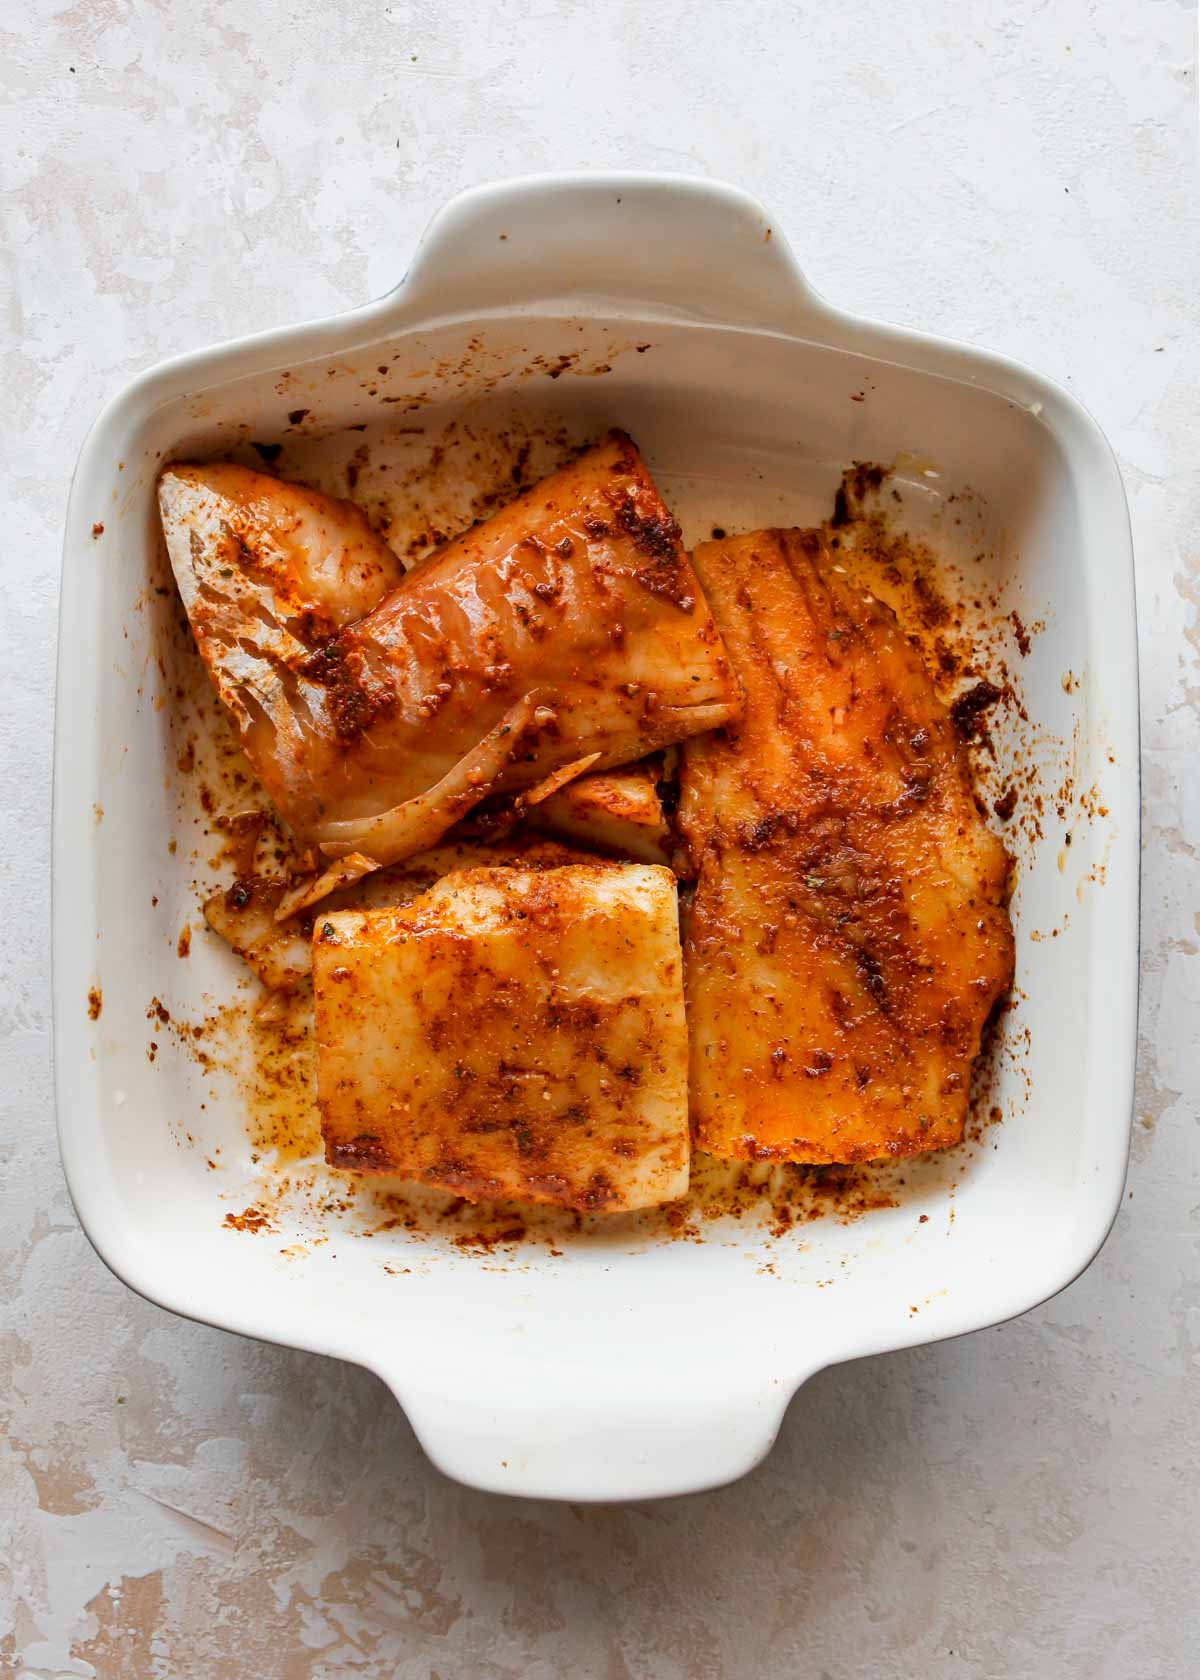 Cod marinating in a spice mixture in a dish